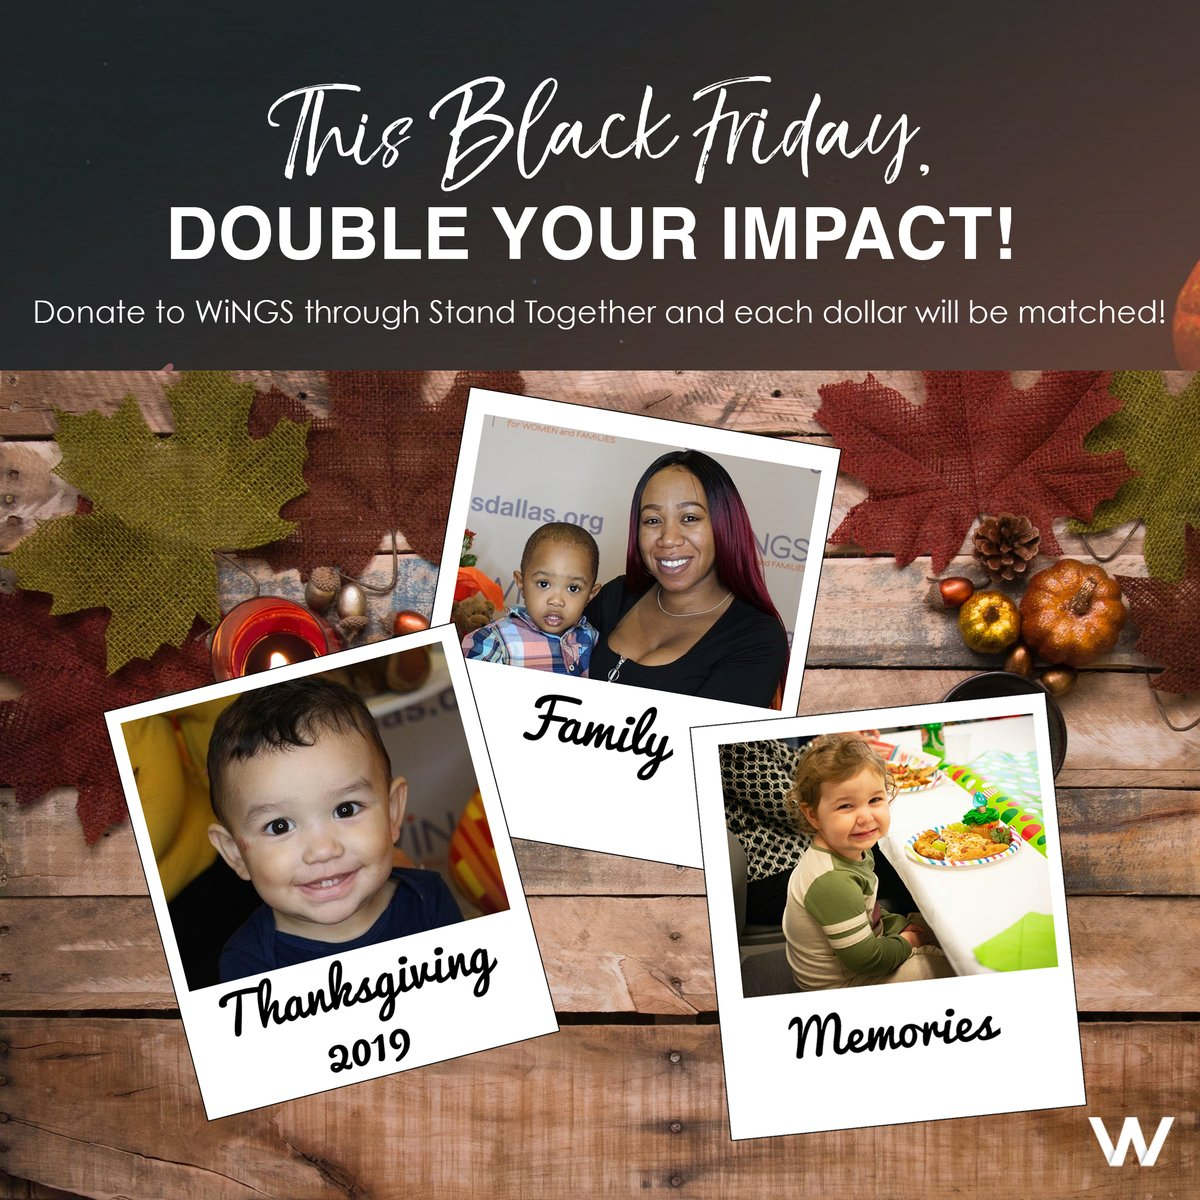 test Twitter Media - #BLACKFRIDAY HAS ARRIVED! It's time to make that dollar count TWICE with a donation to WINGS! Each and every single dollar is matched when you donate at this link: https://t.co/XxnWNHhB9a  #GiversGain #ThankYou https://t.co/QuimOLJkJV